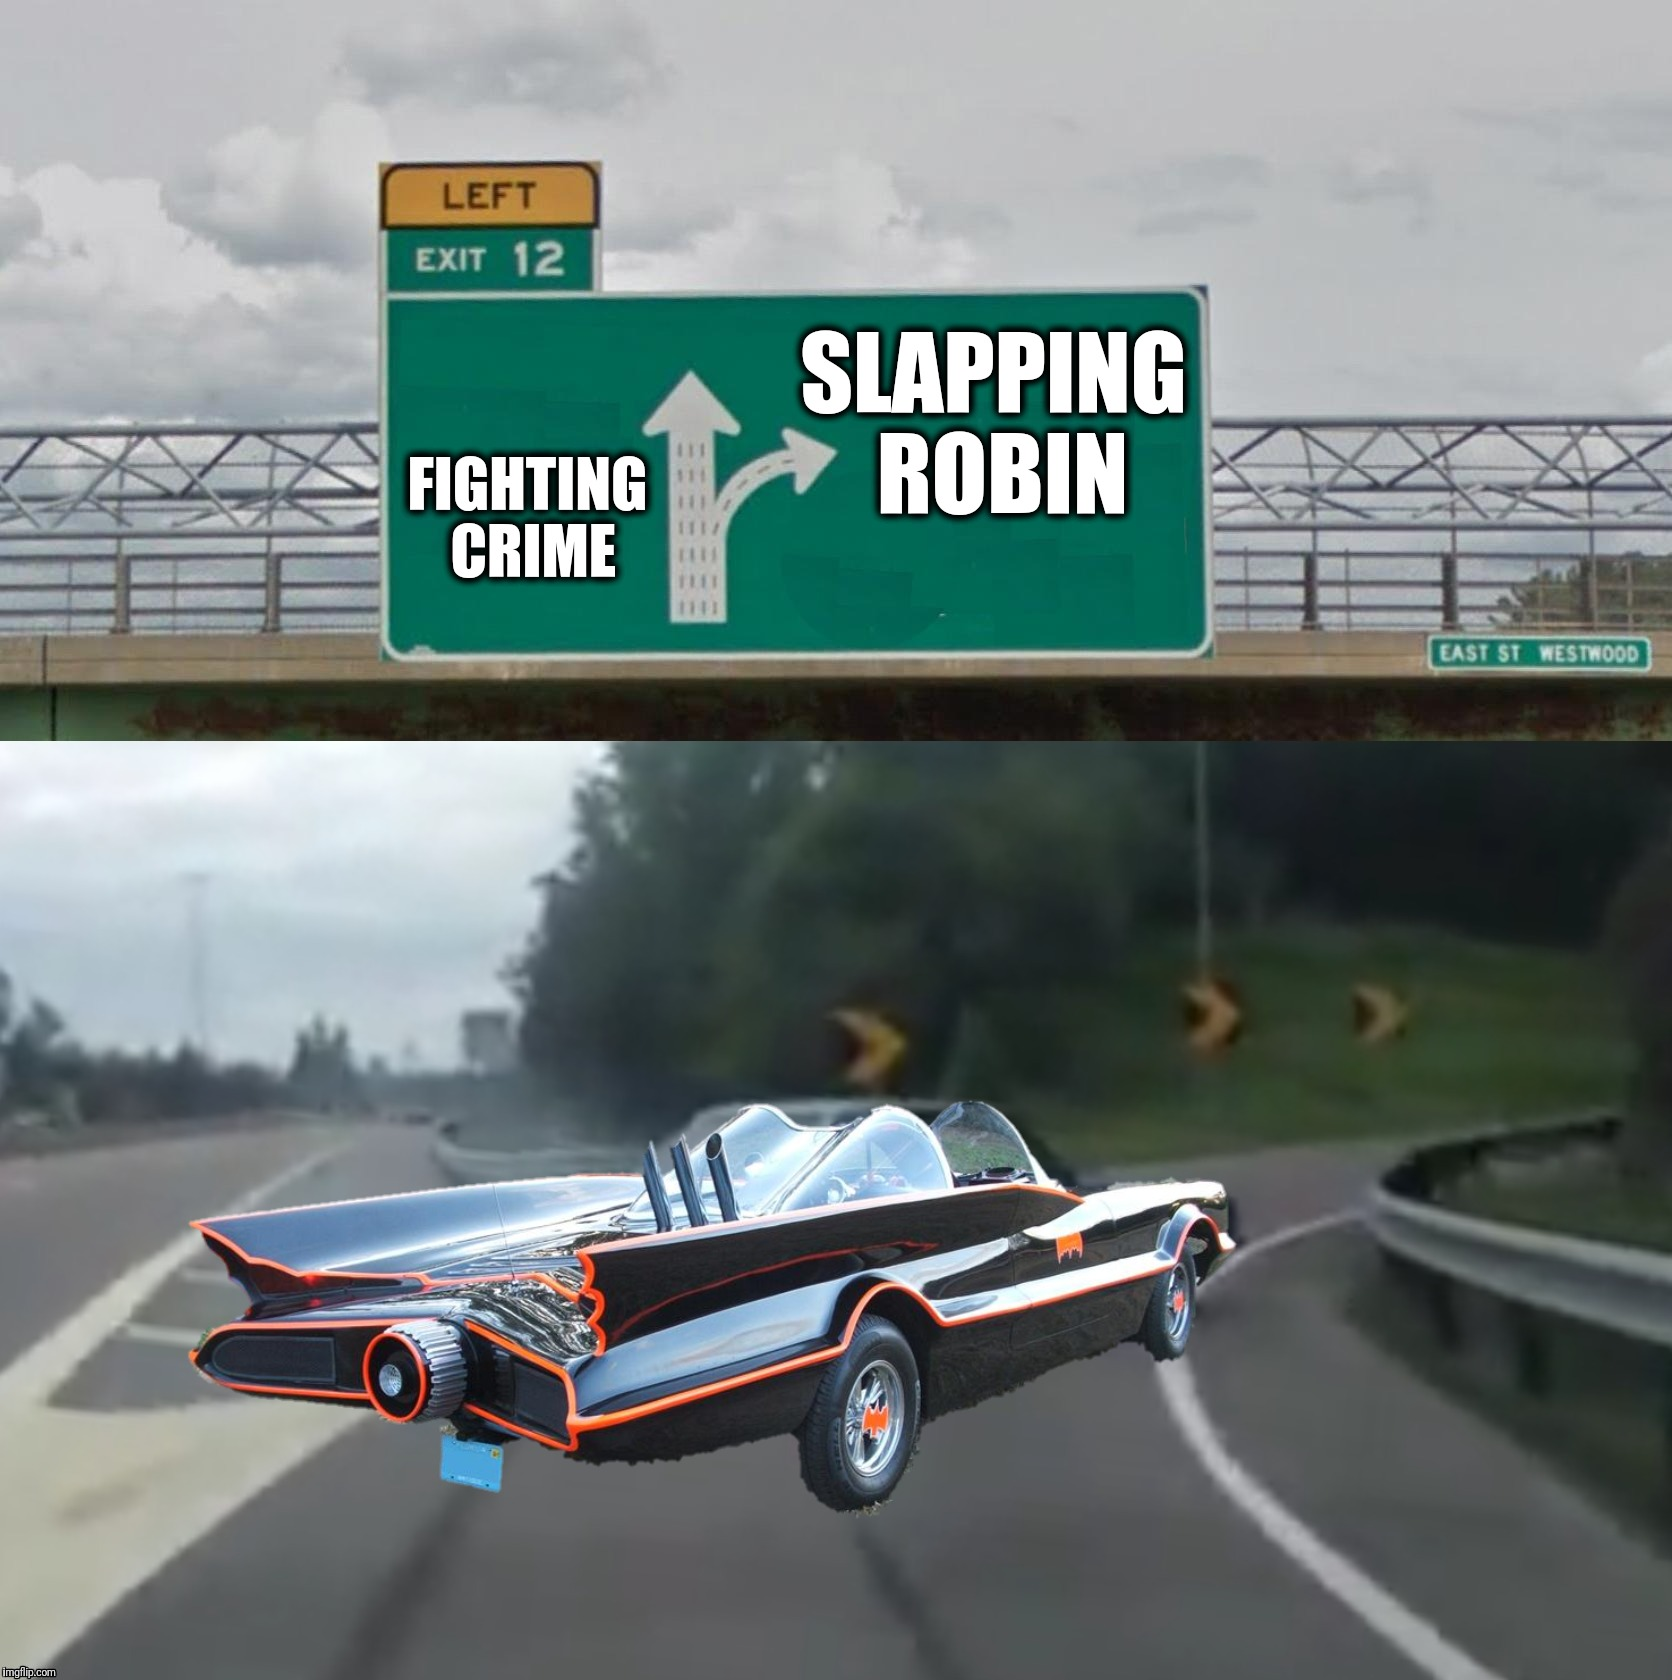 PRIORITIES | FIGHTING CRIME SLAPPING ROBIN | image tagged in left exit 12 high resolution,batman slapping robin,batmobile | made w/ Imgflip meme maker